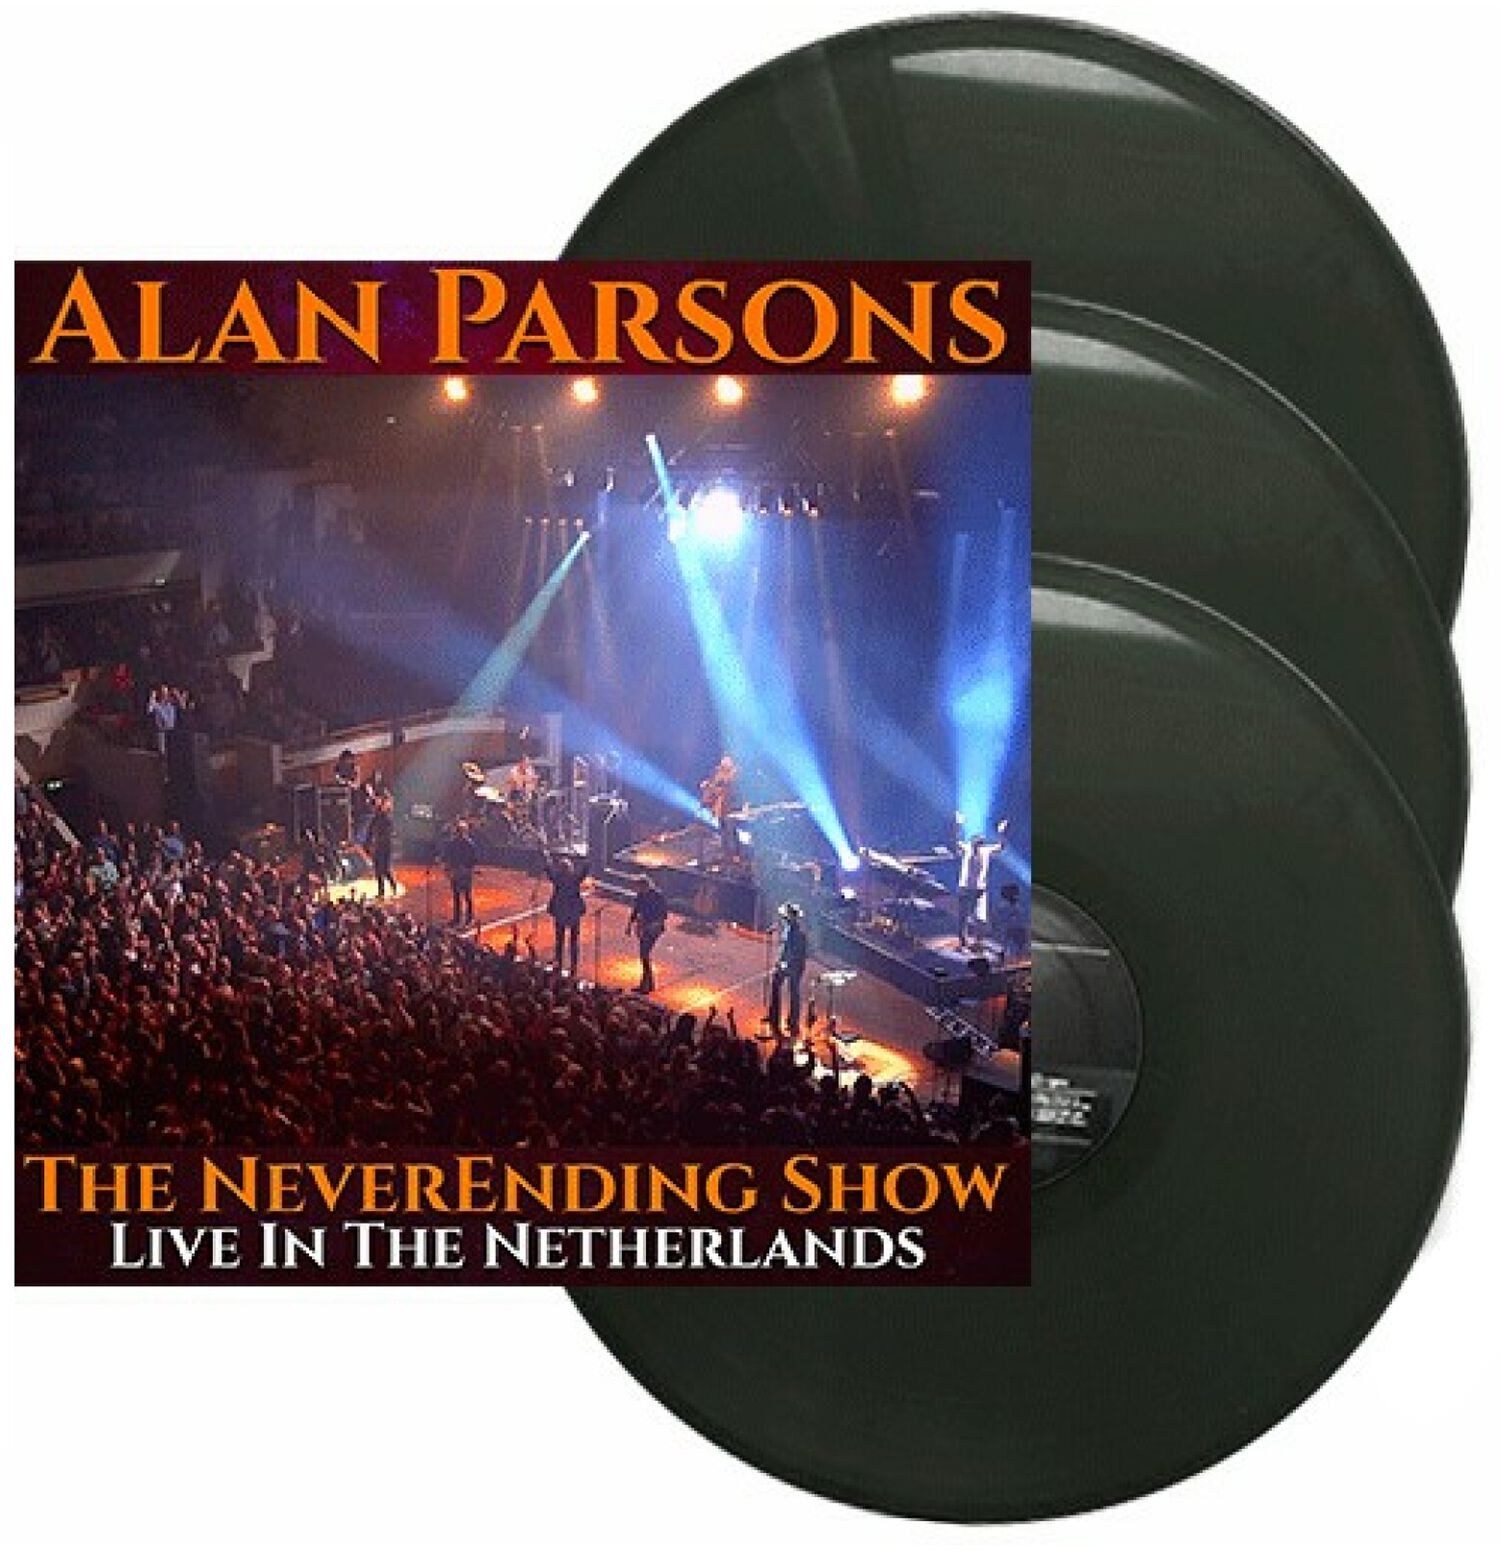 Image of Alan Parsons The neverending Show - Live in the Netherlands 3-LP schwarz